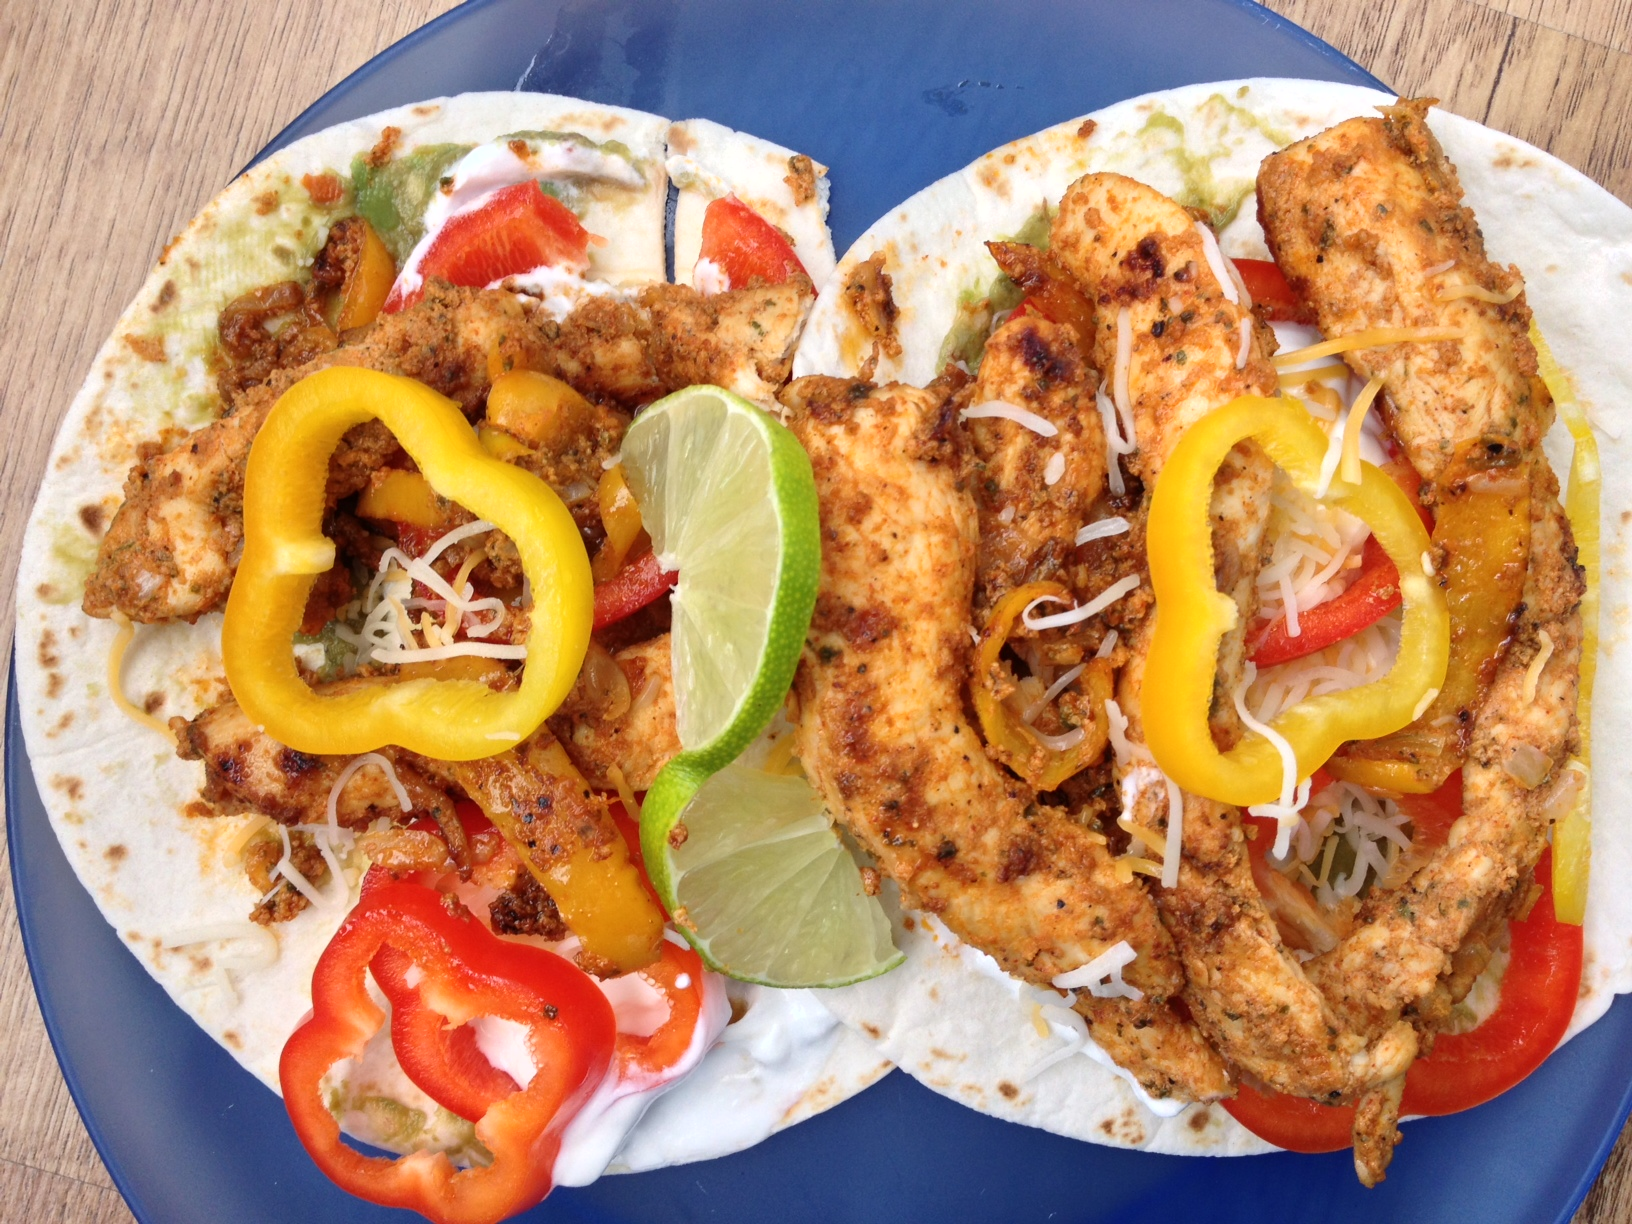 Wildtree chipotle lime fajitas